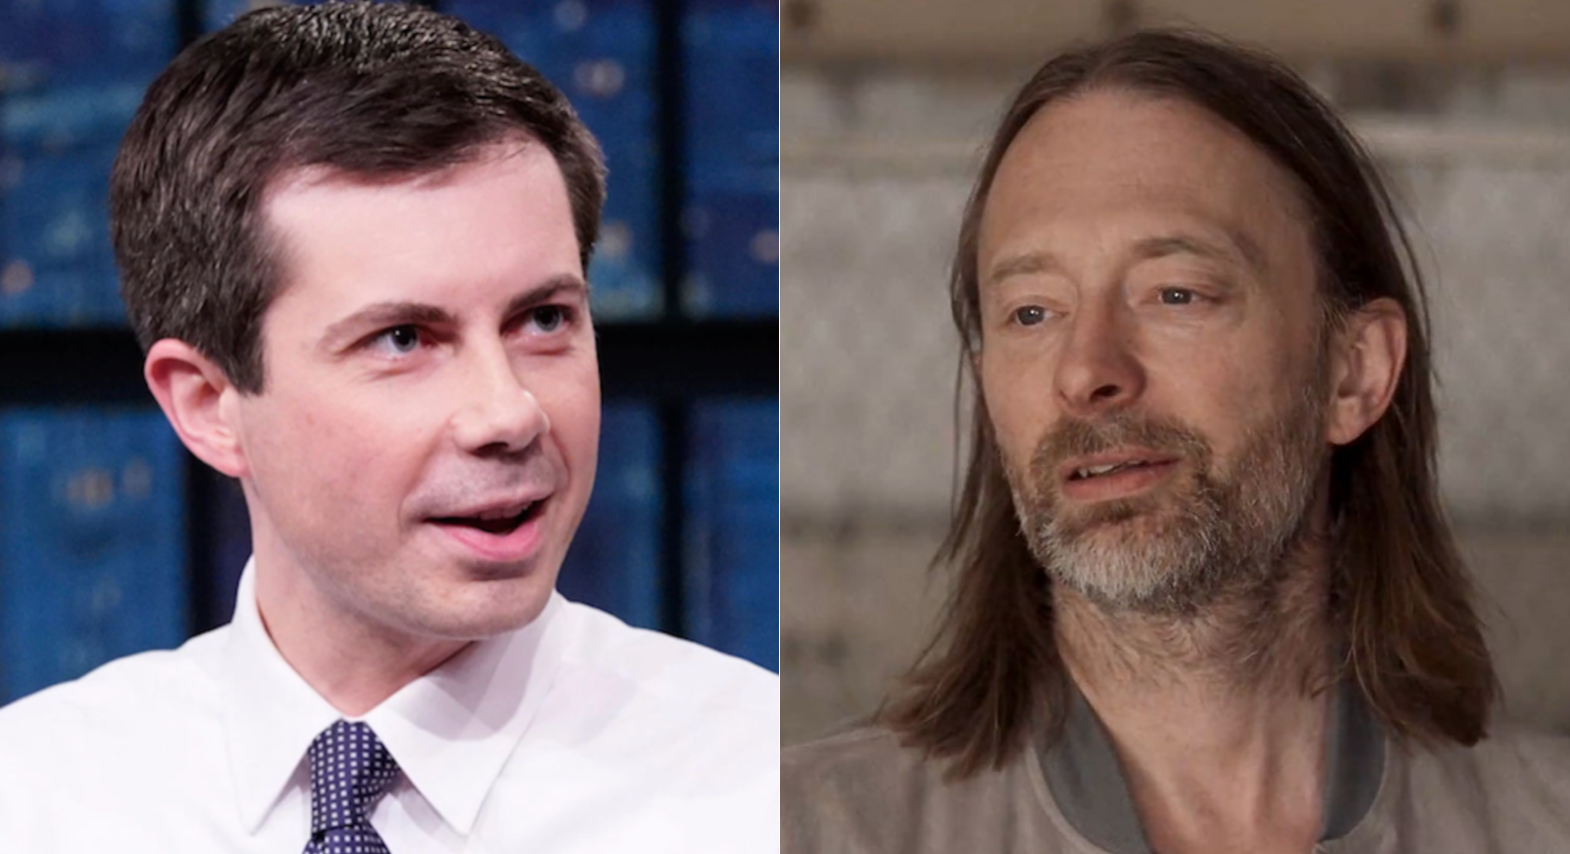 Mayor Pete picks his favorite Radiohead album, but doesn't think they'd be good for an inauguration